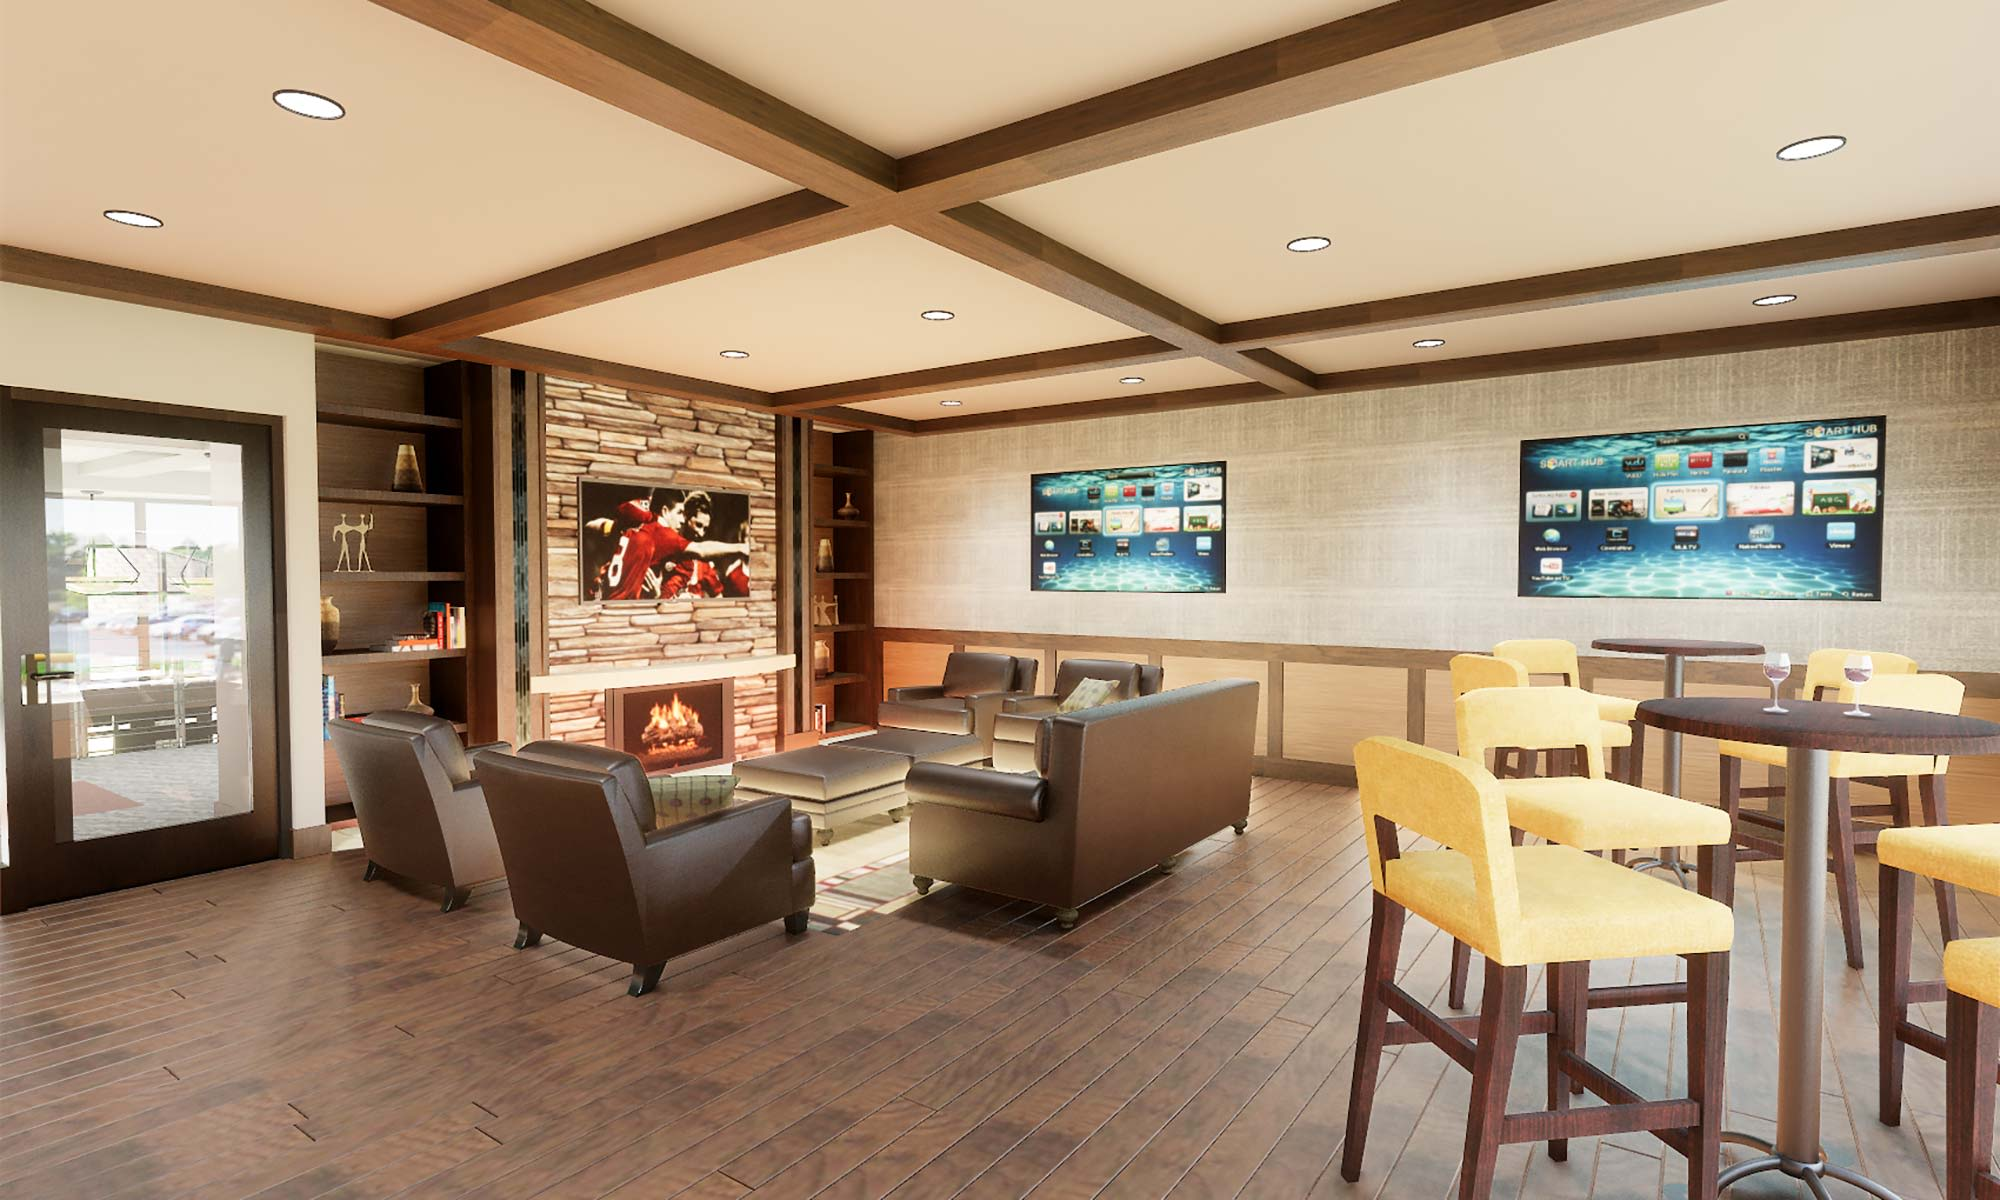 Plenty of flatscreen TVs in the bar at The Fairways of Ironhorse so you can watch whatever you like